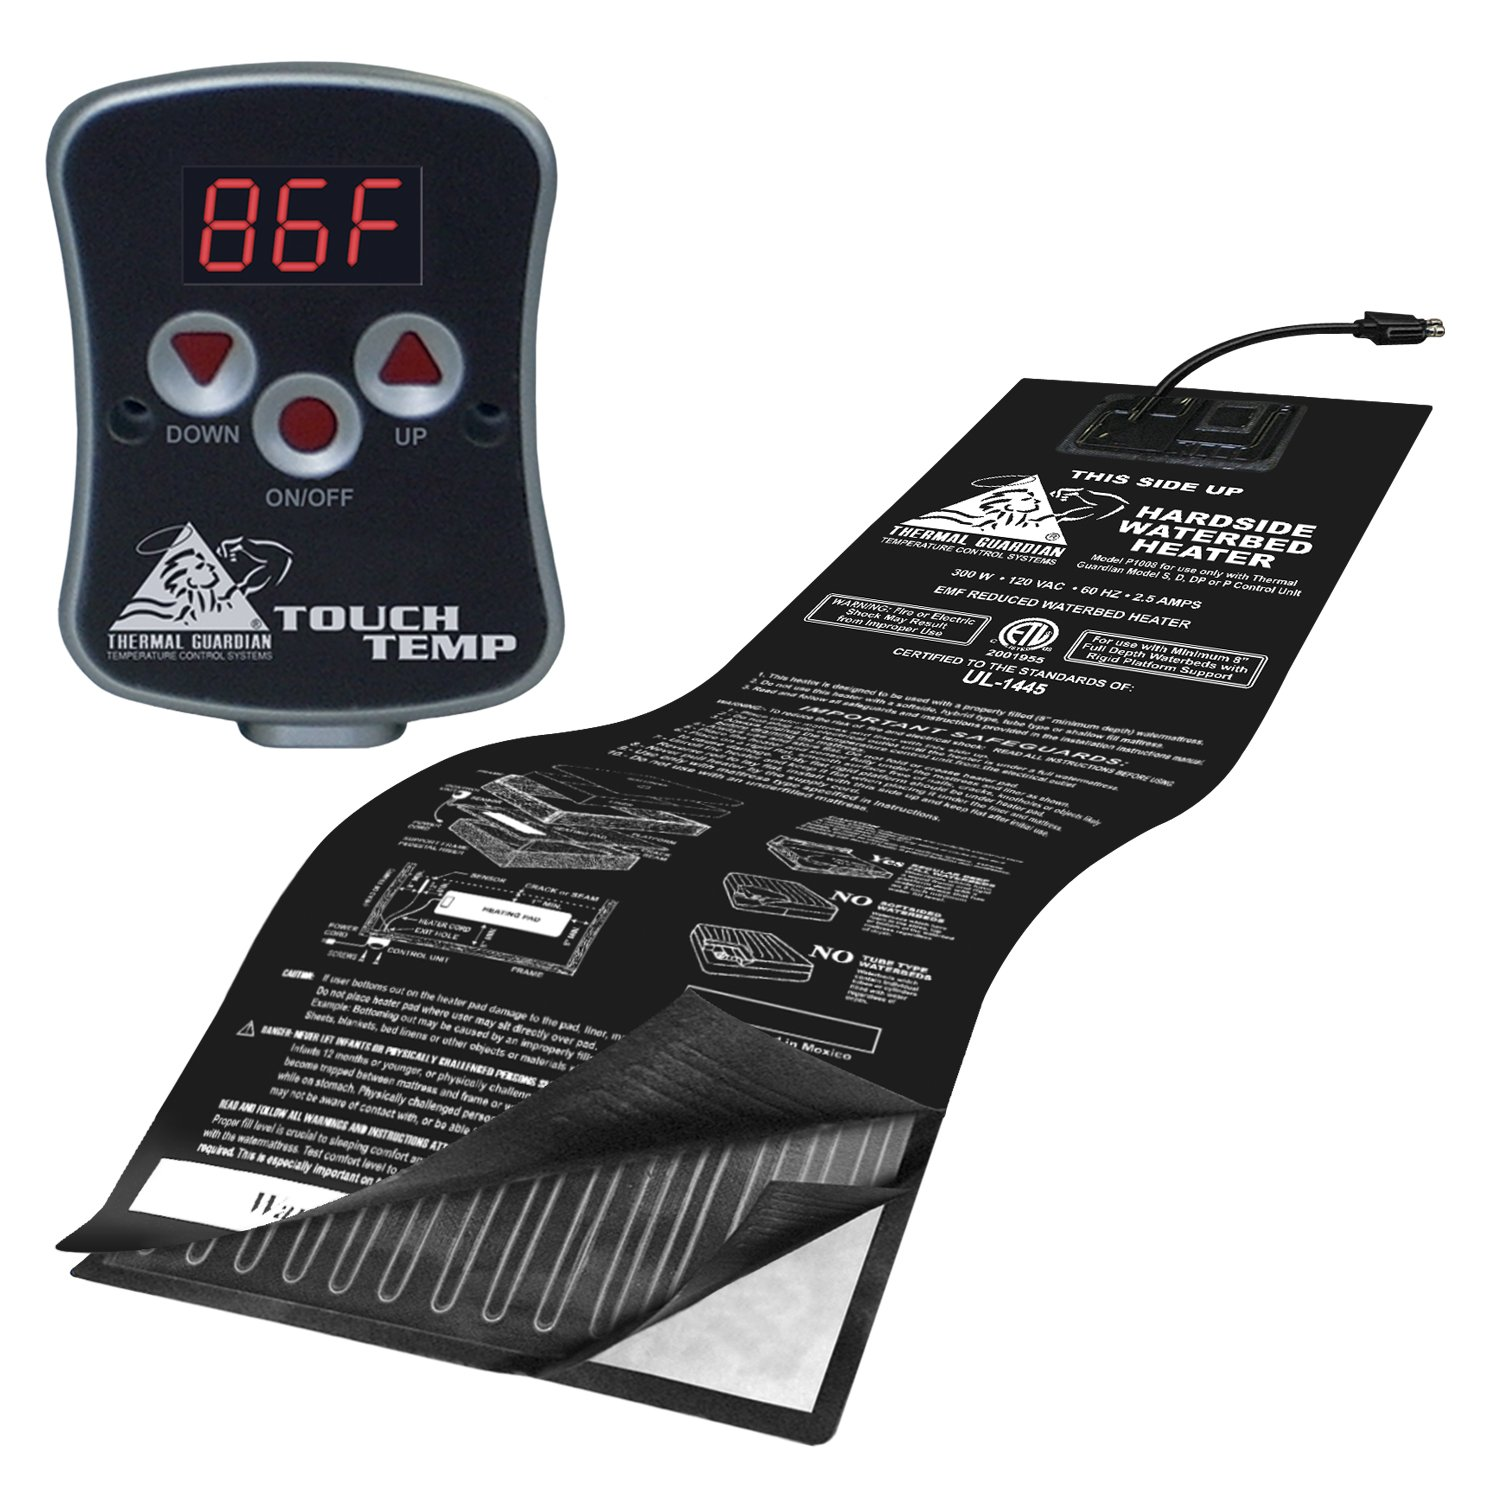 INNOMAX Thermal Guardian Touch Temp Solid State Hardside Waterbed Heater, Full Watt by INNOMAX